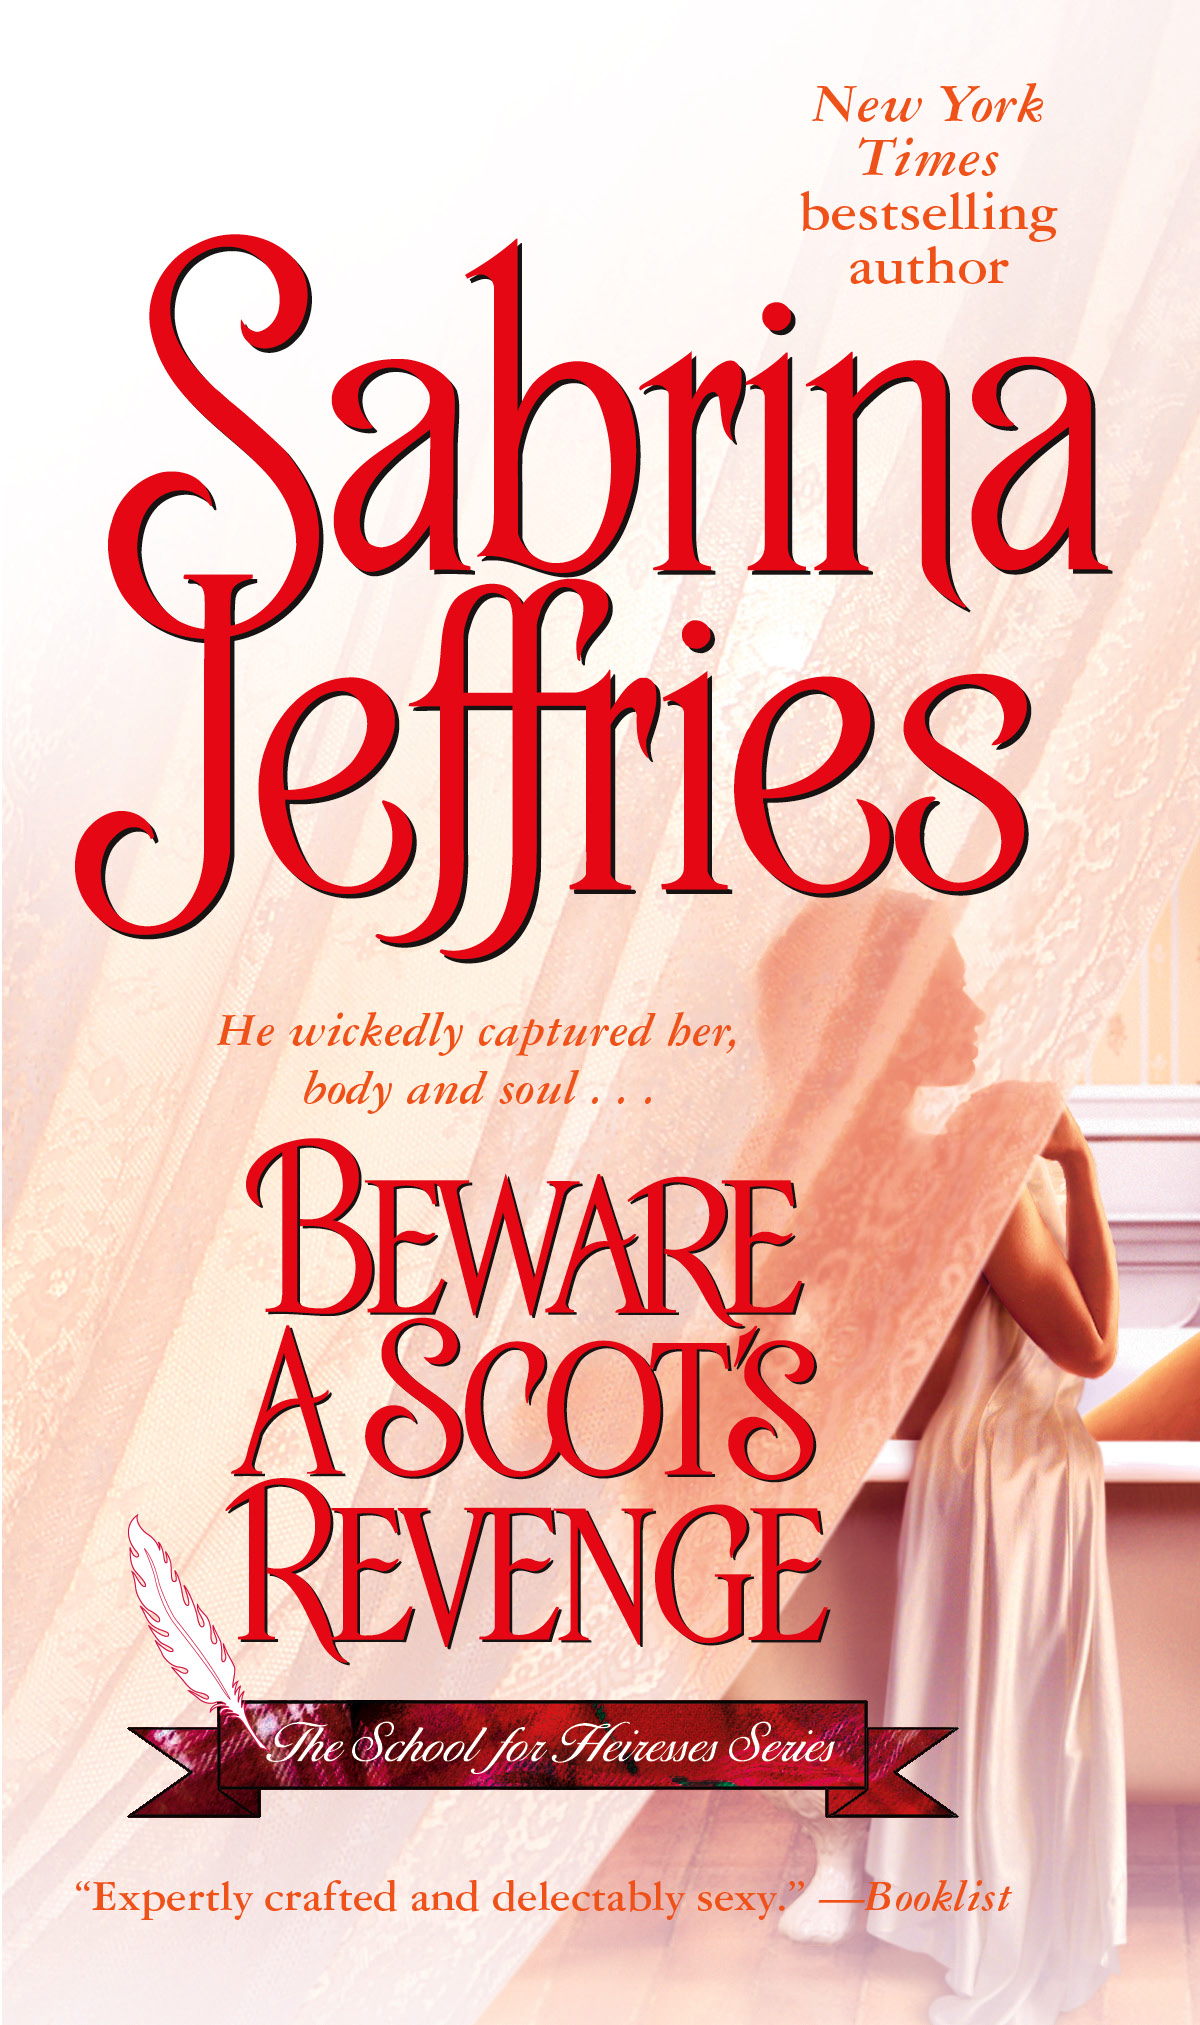 Beware a scots revenge book by sabrina jeffries official cvr9781416516101 9781416516101 hr fandeluxe Image collections